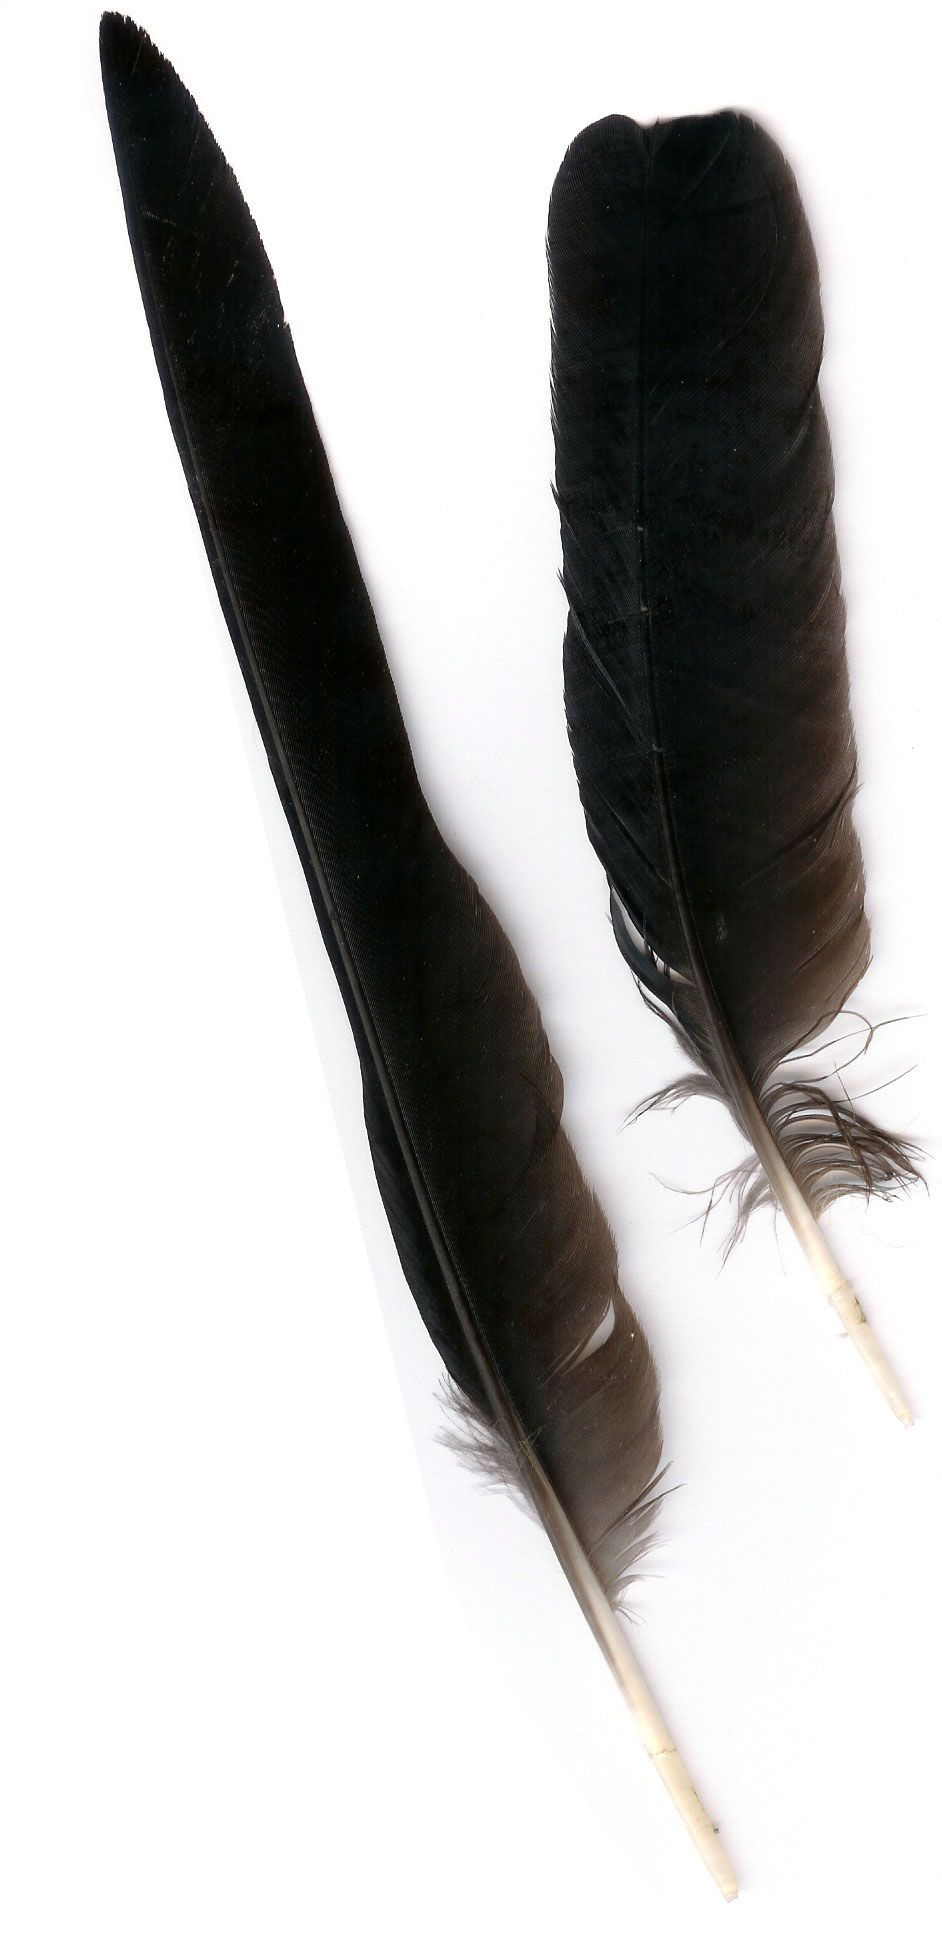 Feast for crows crow feather table decorations stuff feast for crows crow feather table decorations buycottarizona Gallery